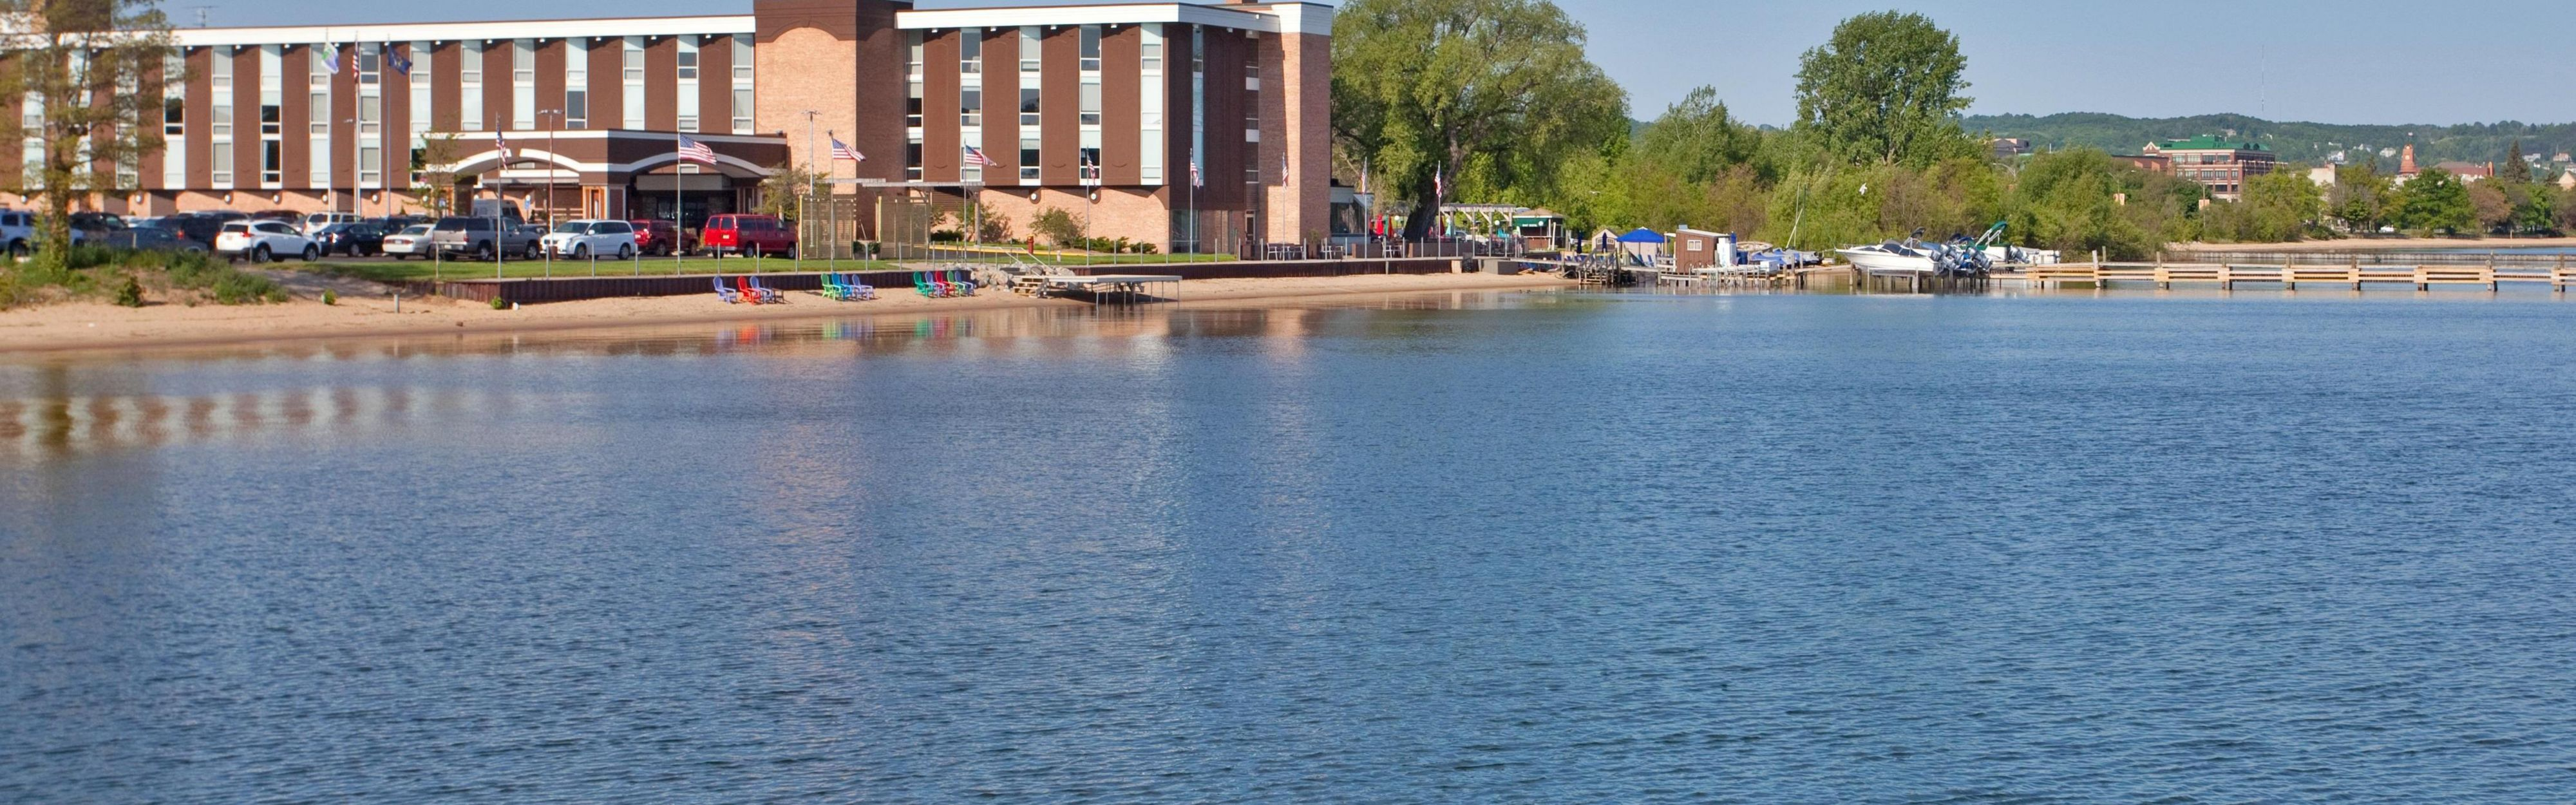 Hotels And Motels In Traverse City Michigan